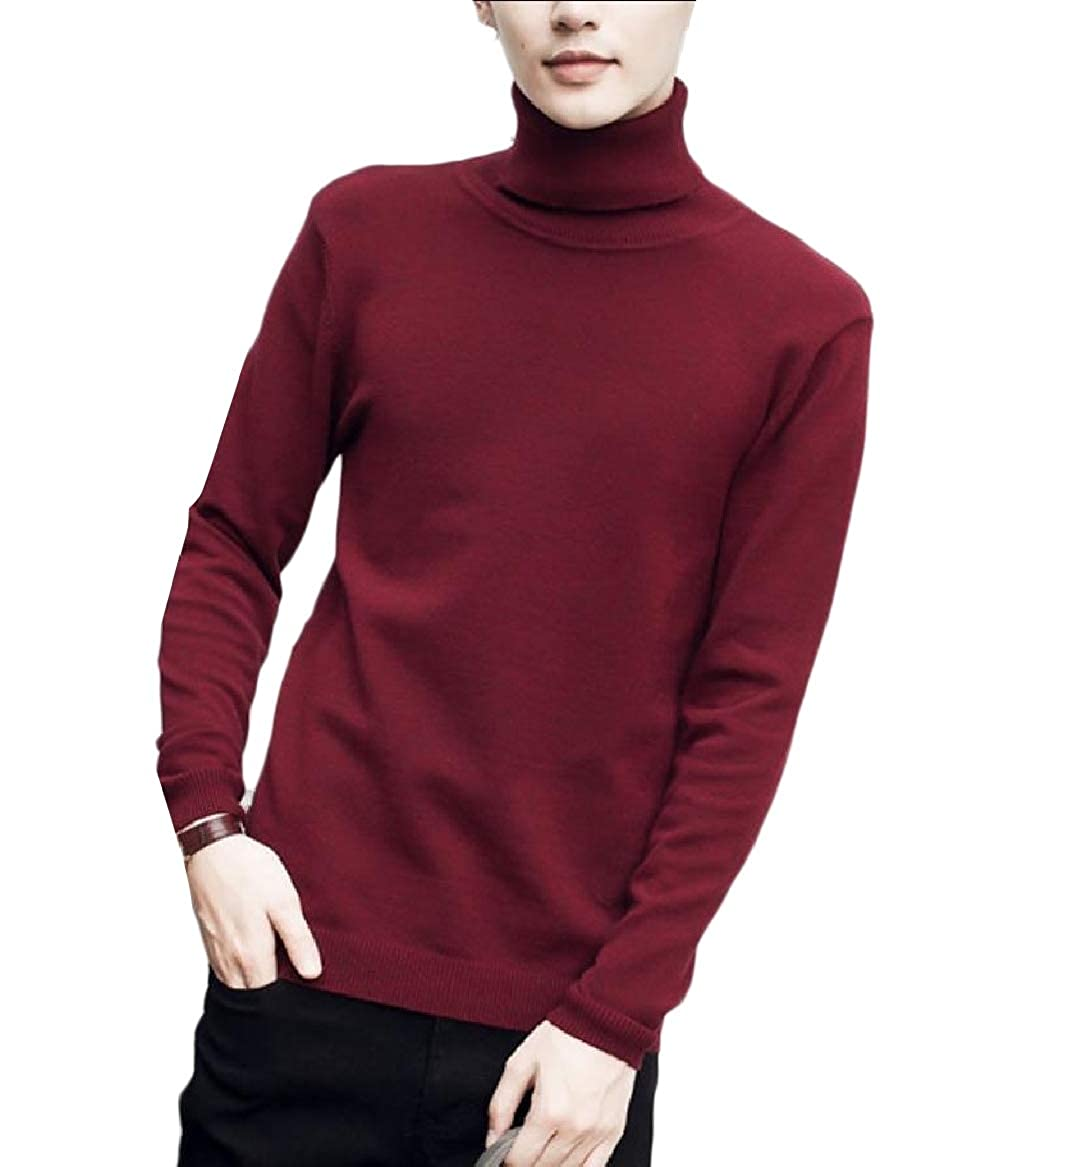 YUNY Men Warm Solid Regular-Fit Knit Turtleneck Comfy Sweater Pullover Wine Red 3XL